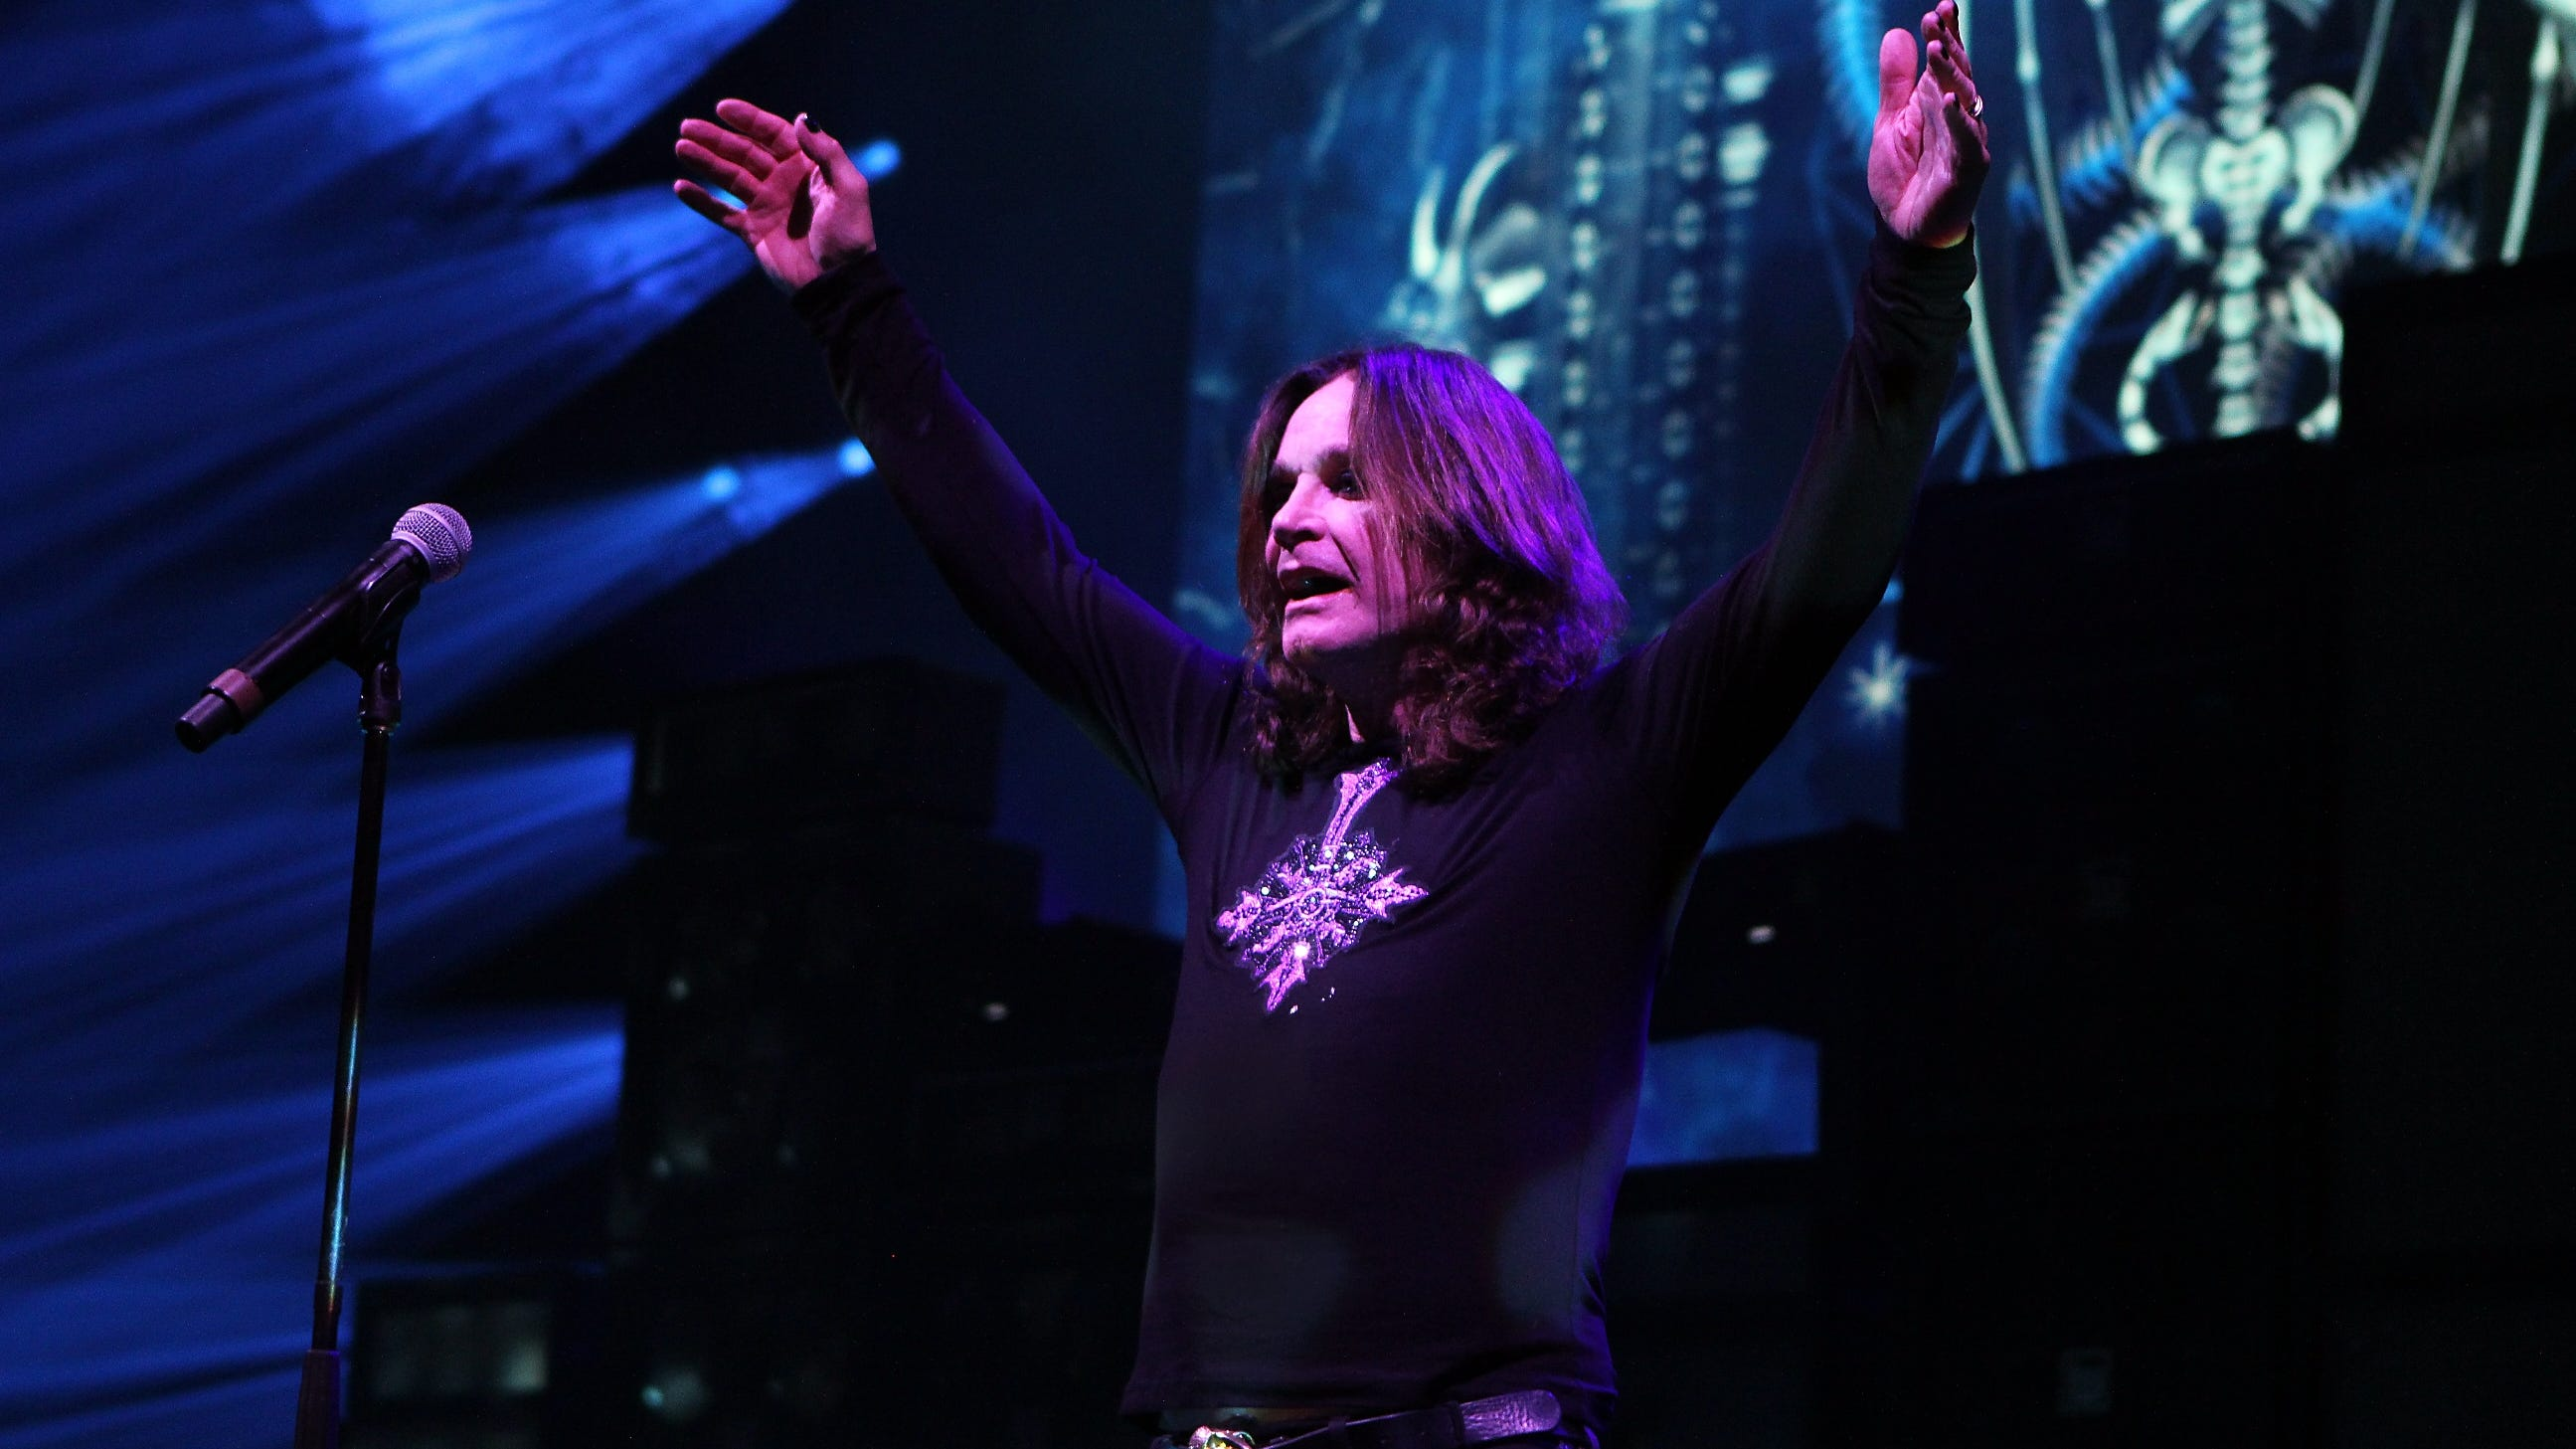 Ozzy Osbourne is on the road for his No More Tours 2 series of farewell concerts.